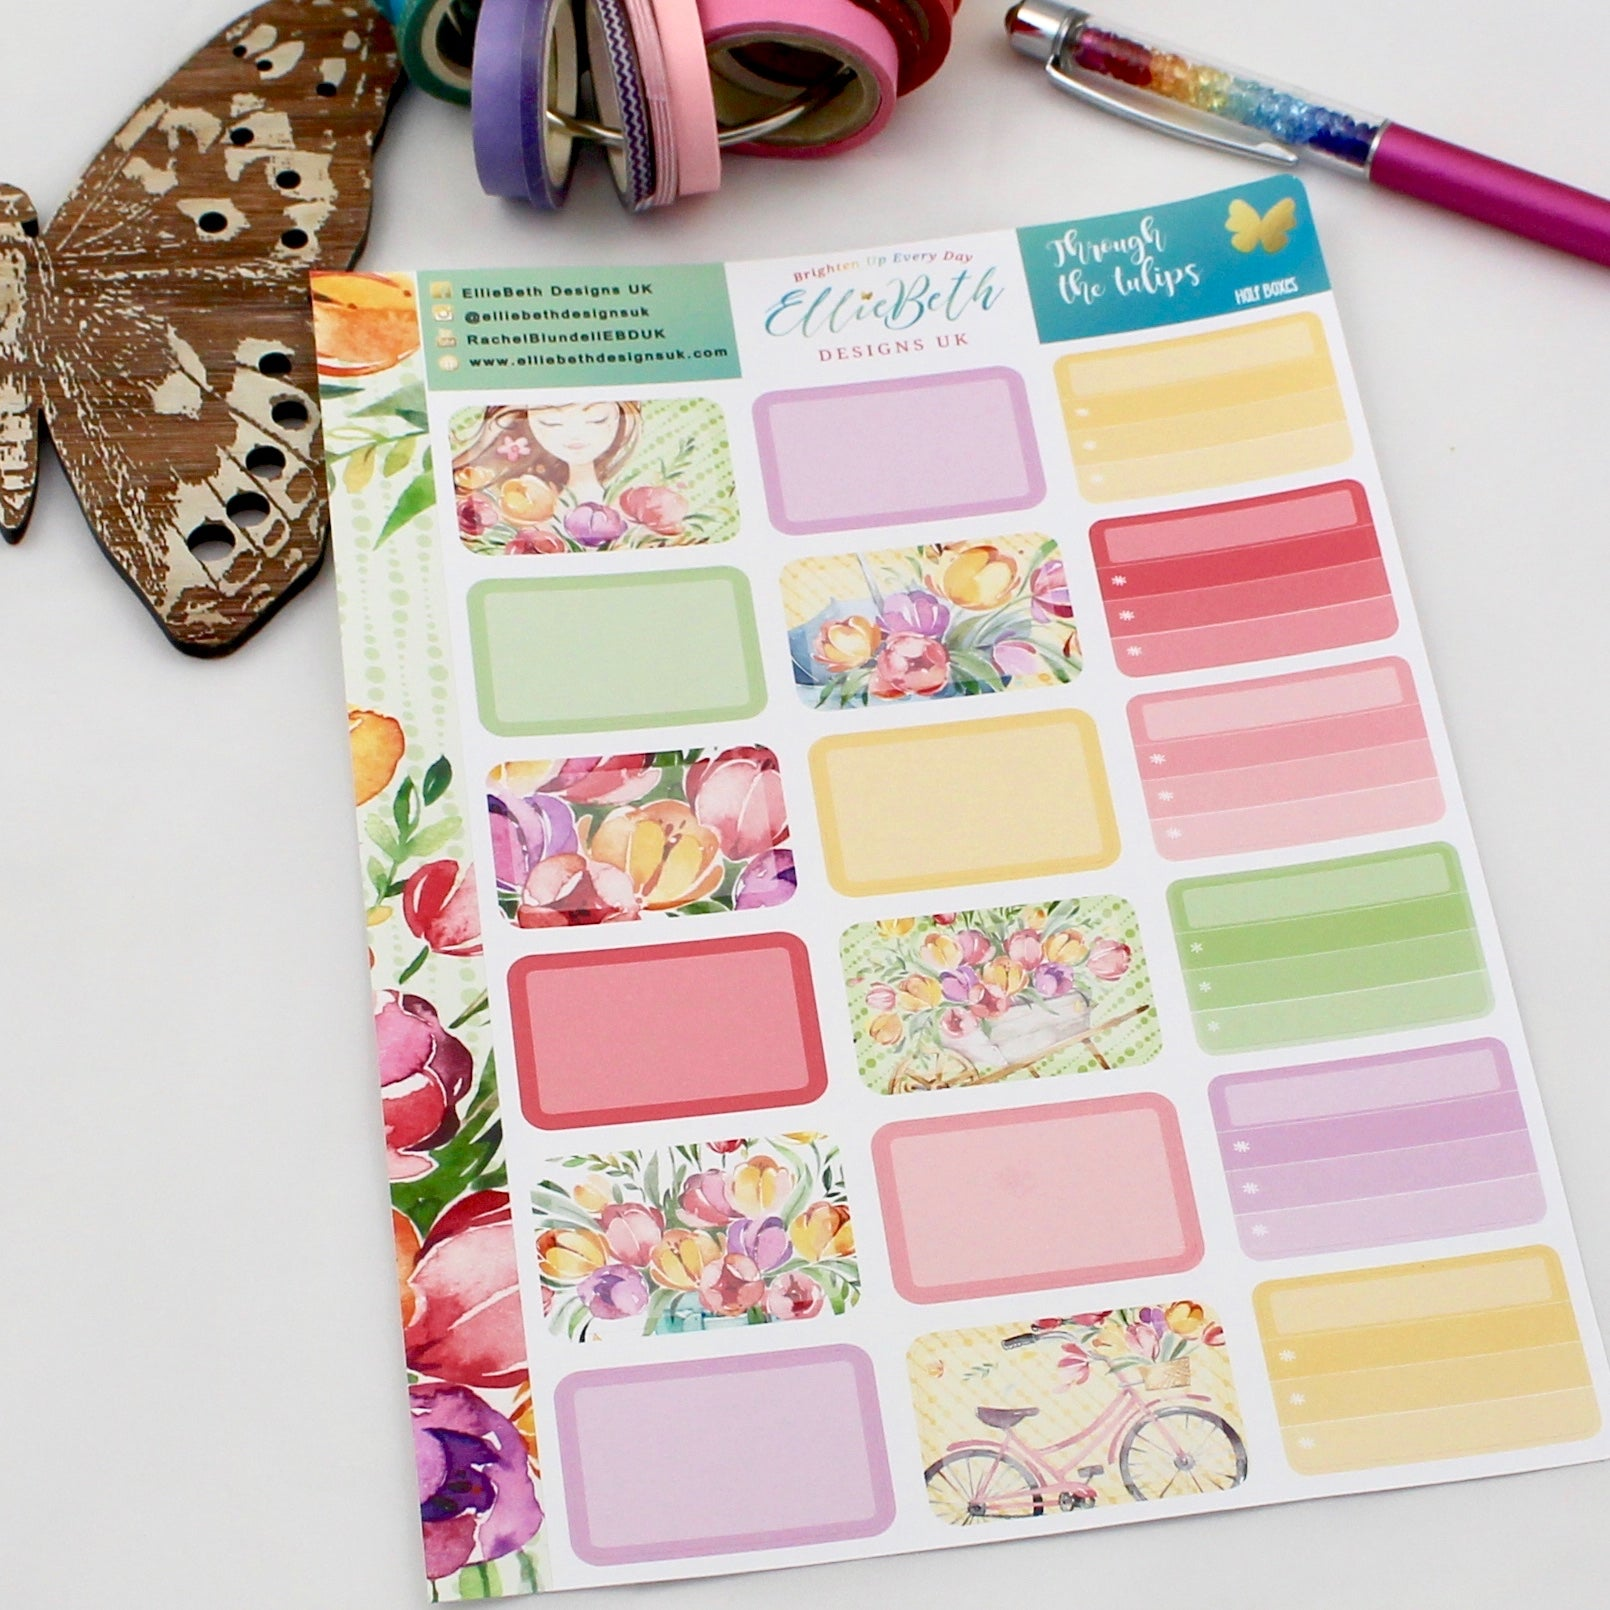 'Through the Tulips' - Half Boxes -  A5 binder ready planner stickers